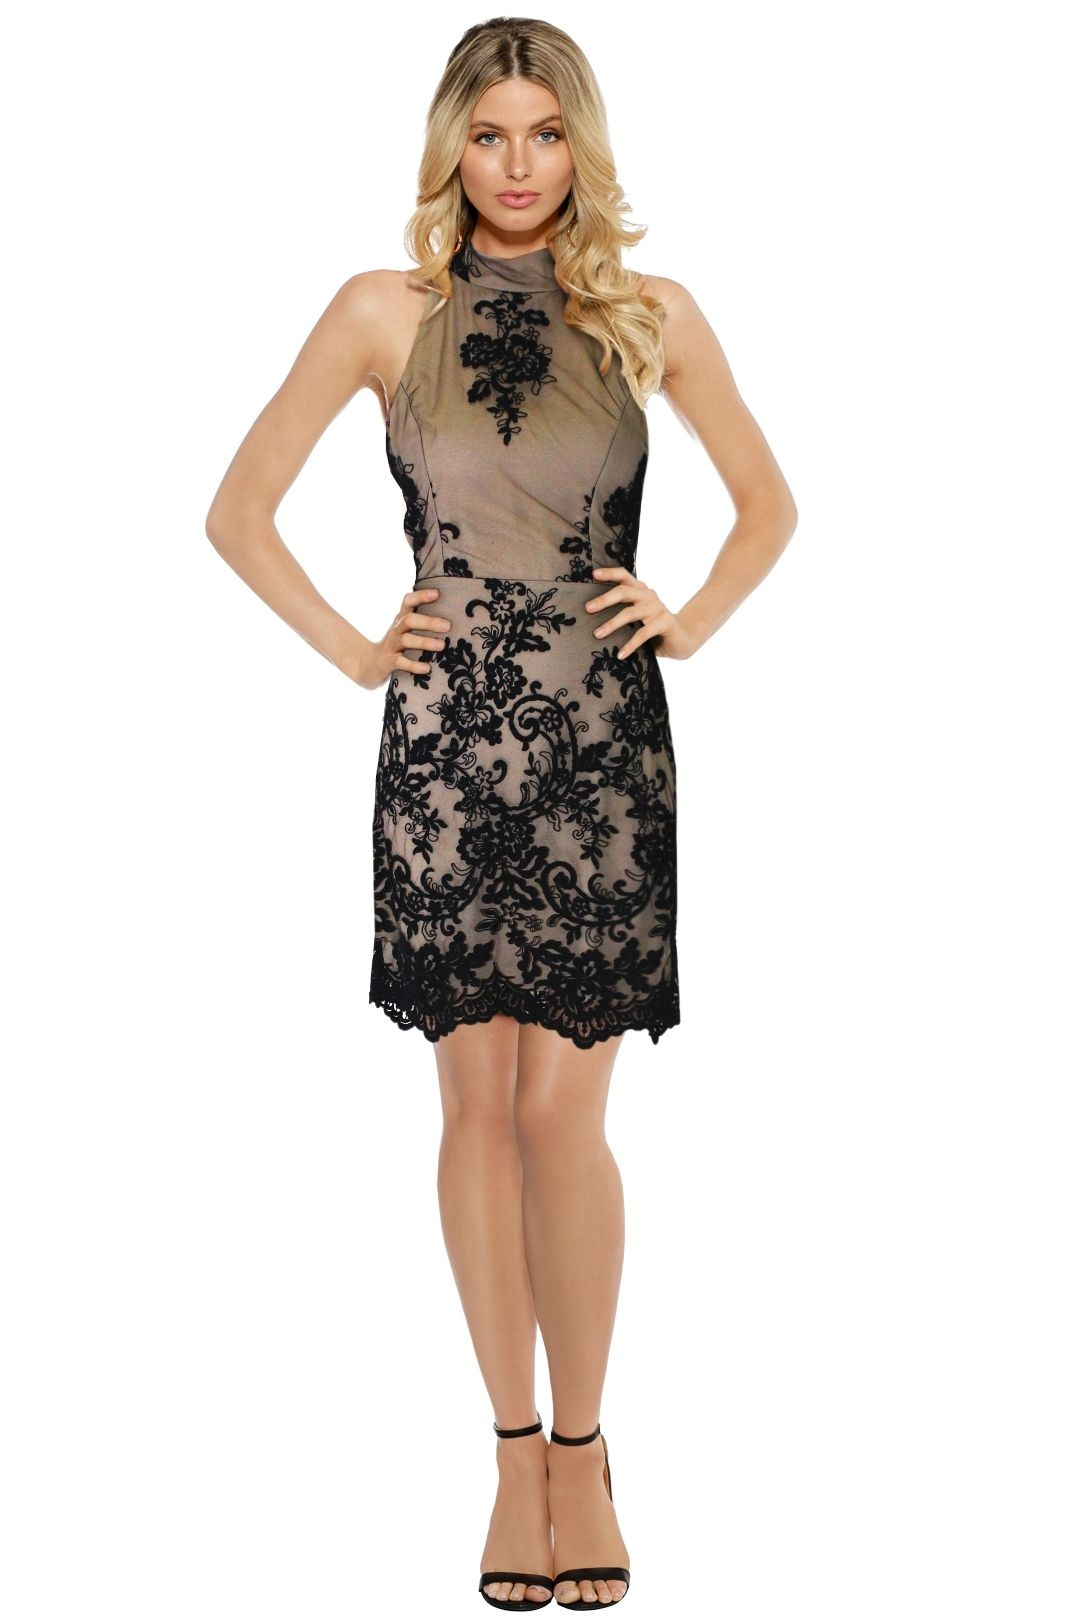 LUOM.O - Caprice Lace Halter Dress - Nude - Front